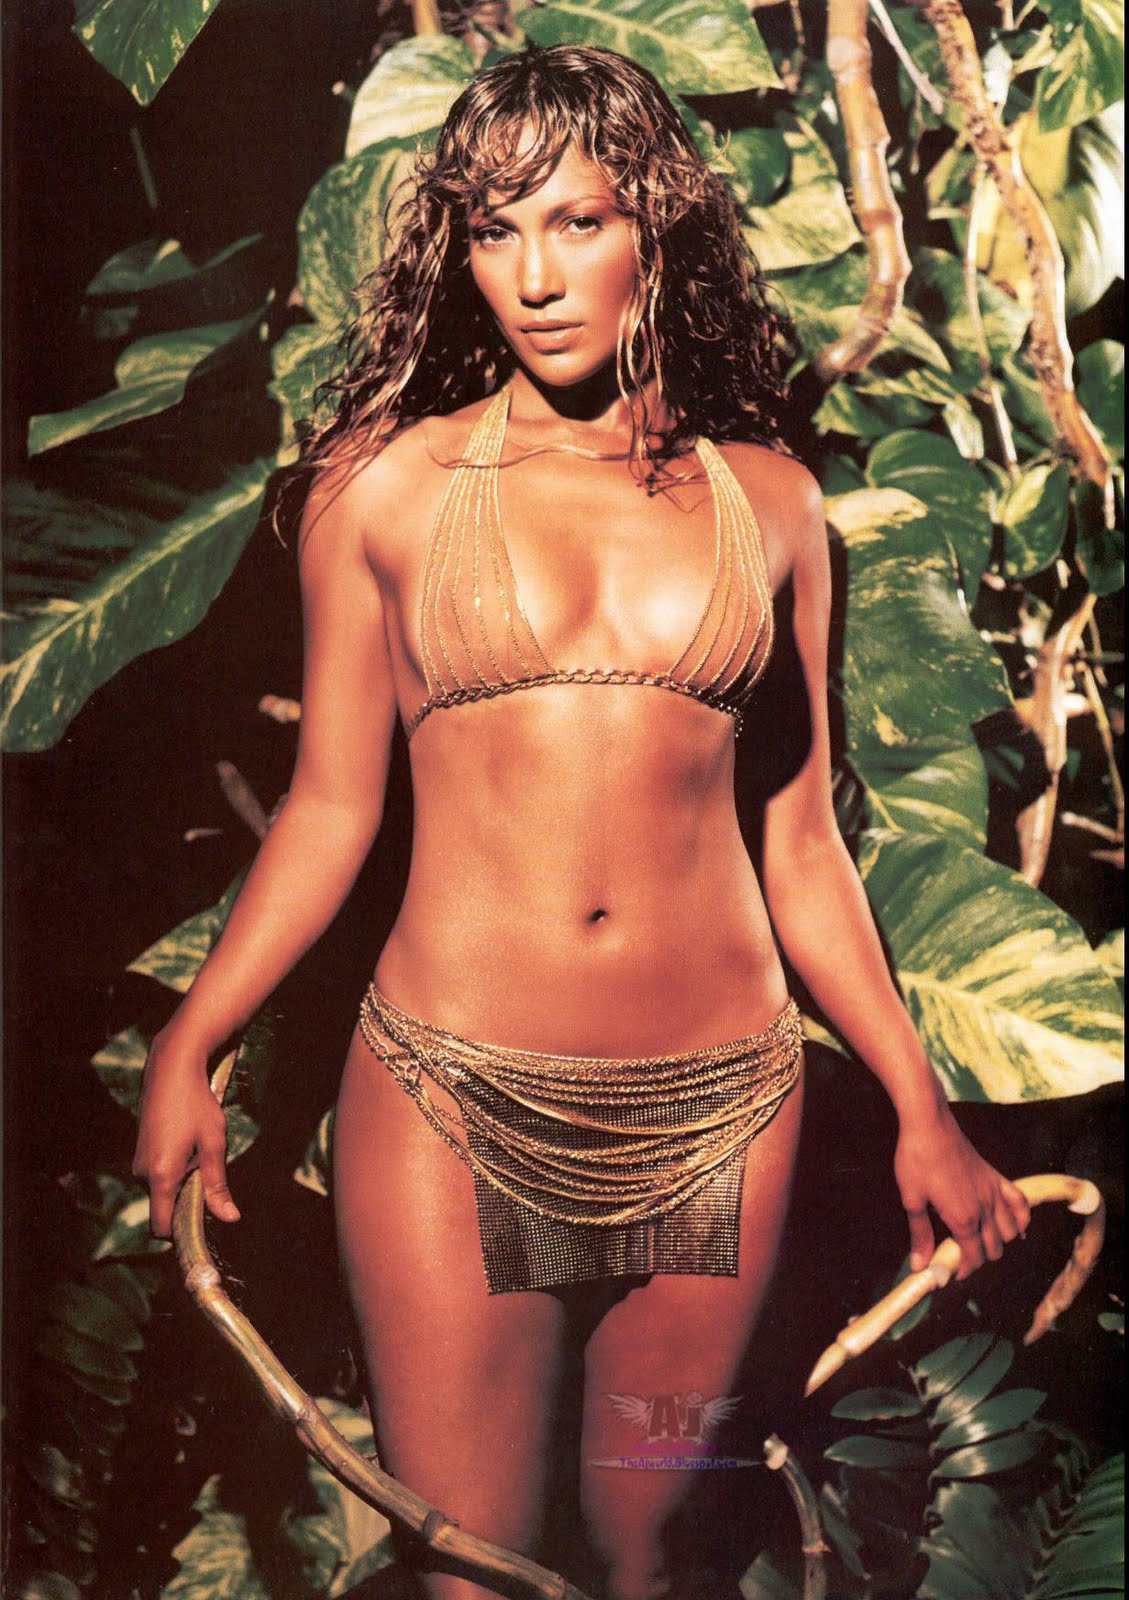 Jennifer Lopez Hot And Sexy Photos Wallpapers ~ The Aj Hub | We Share Love